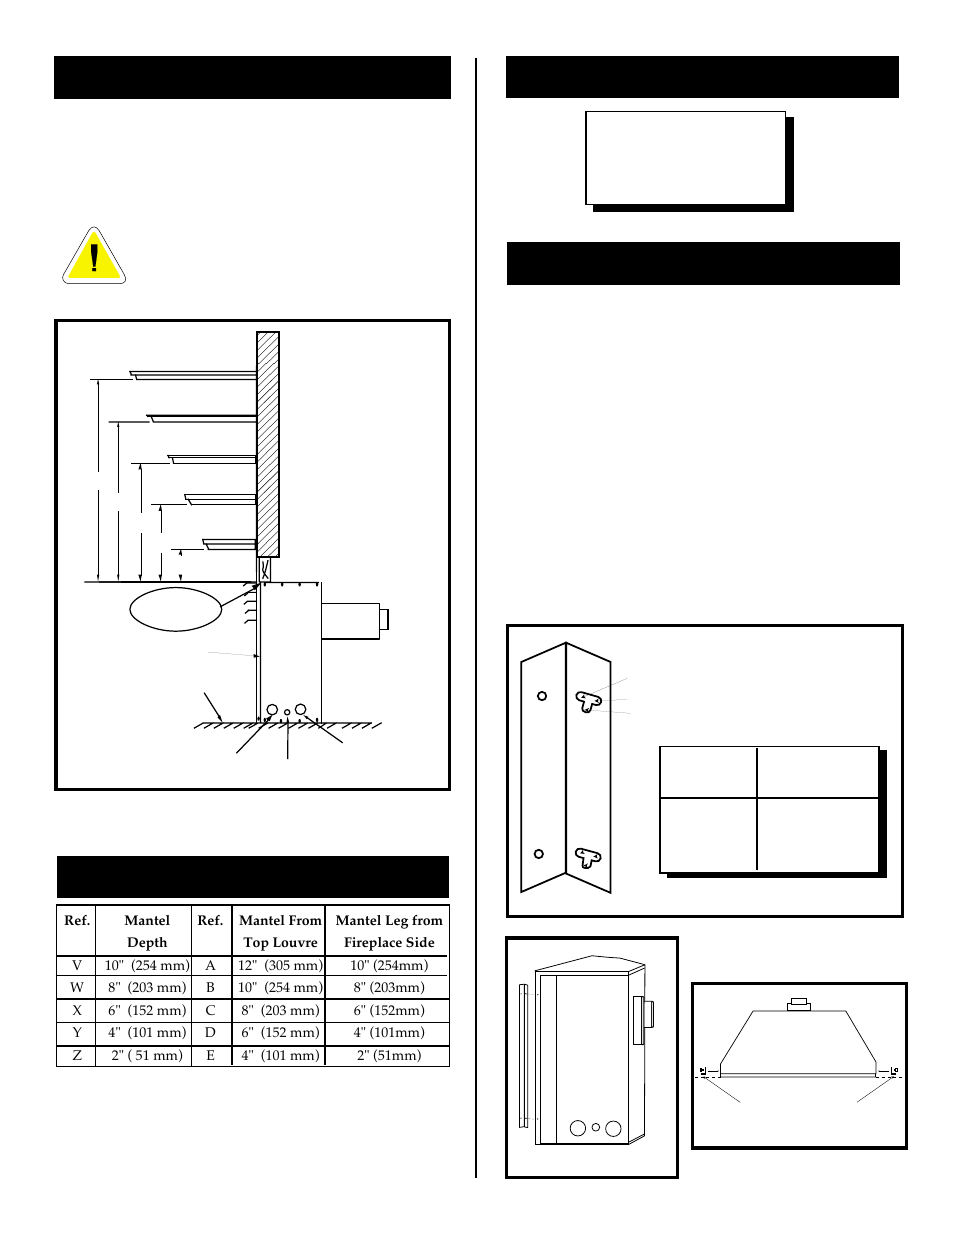 Mantel chart, Mantels, Clearance to combustibles | Vermont